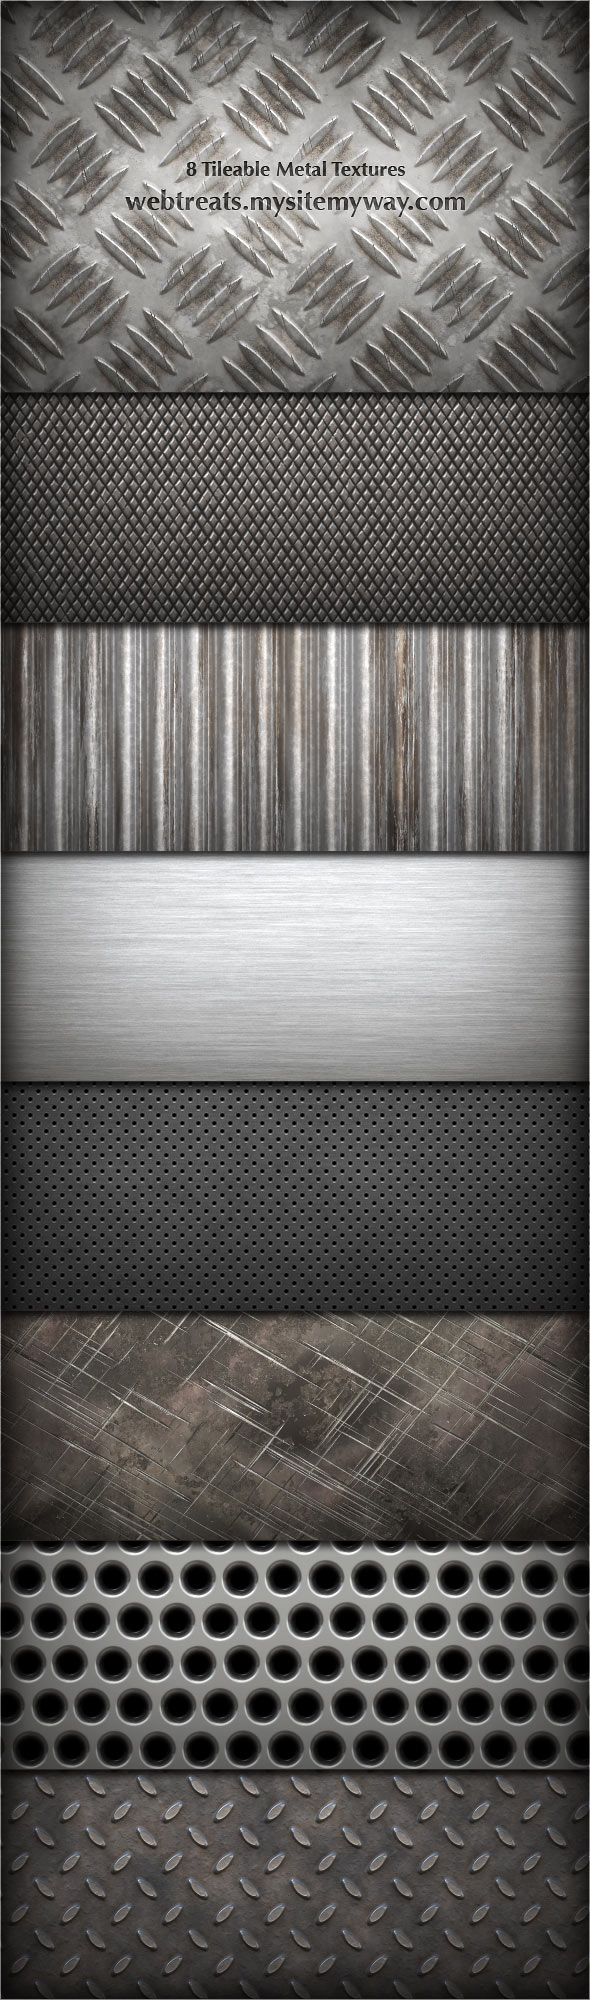 Leather Textures clipart psd #2